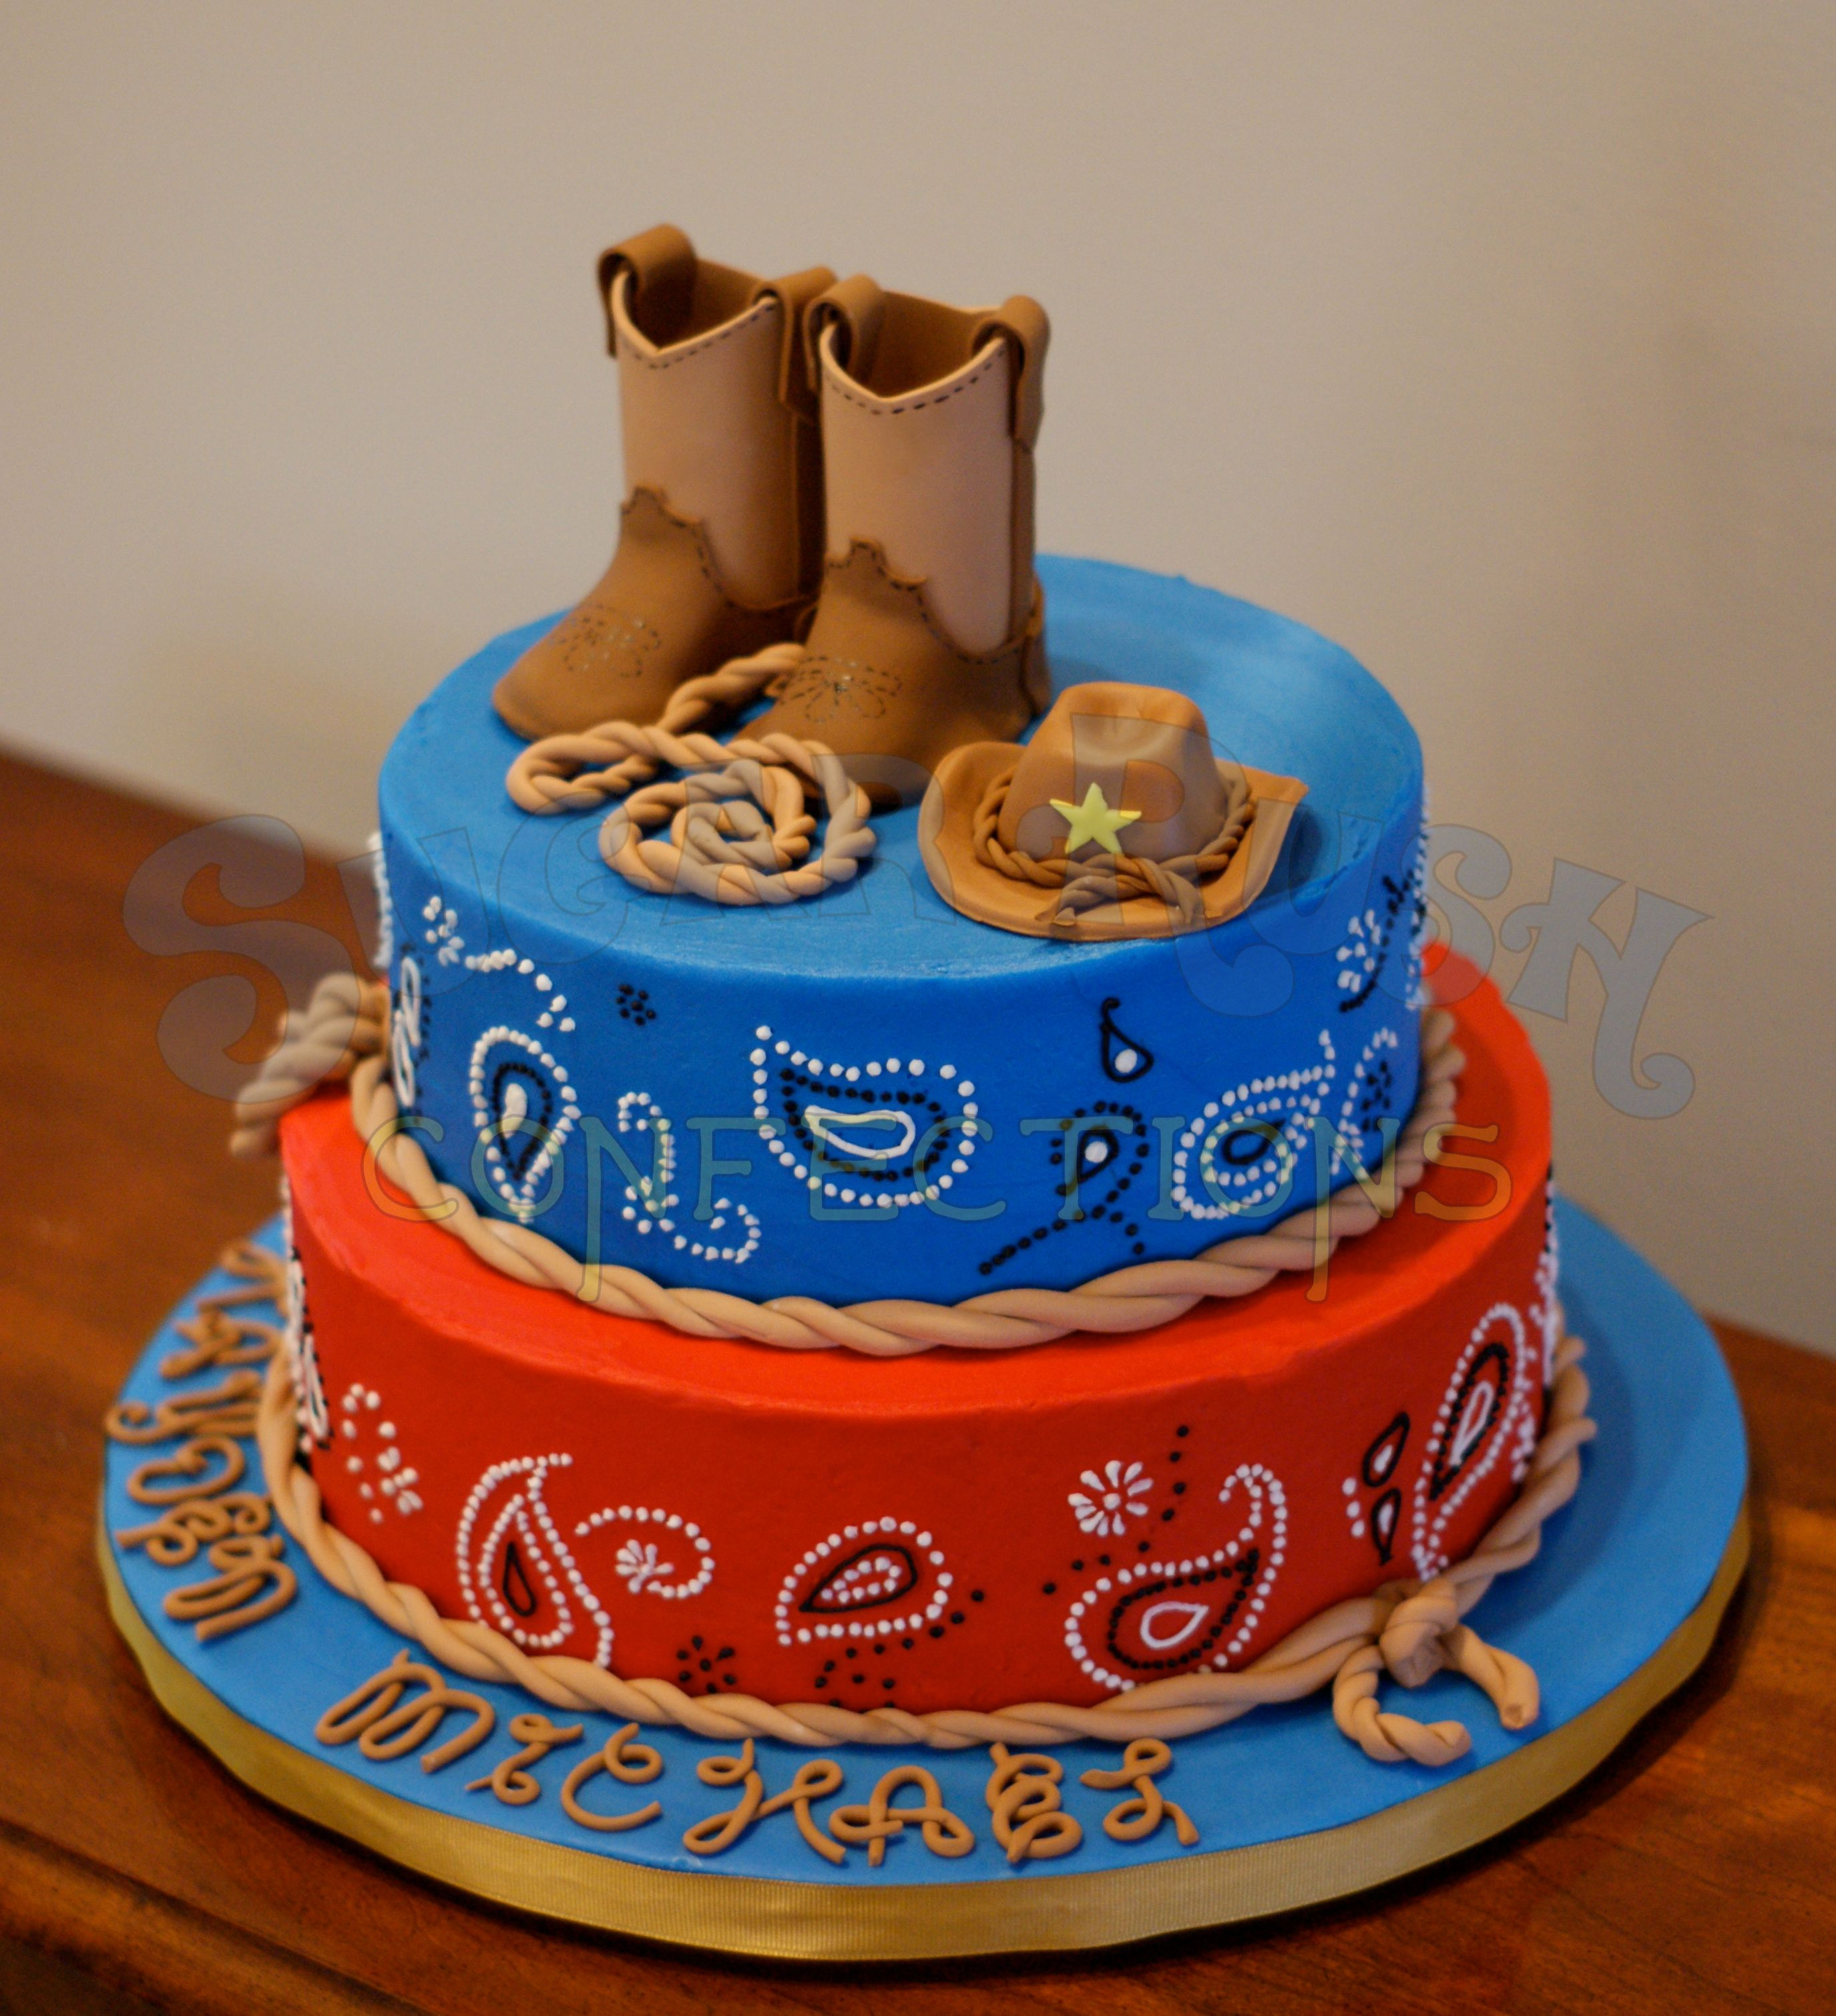 Western Decor For Birthday: Really Cute But I Dont Like The Boots Or Hat On Top And It